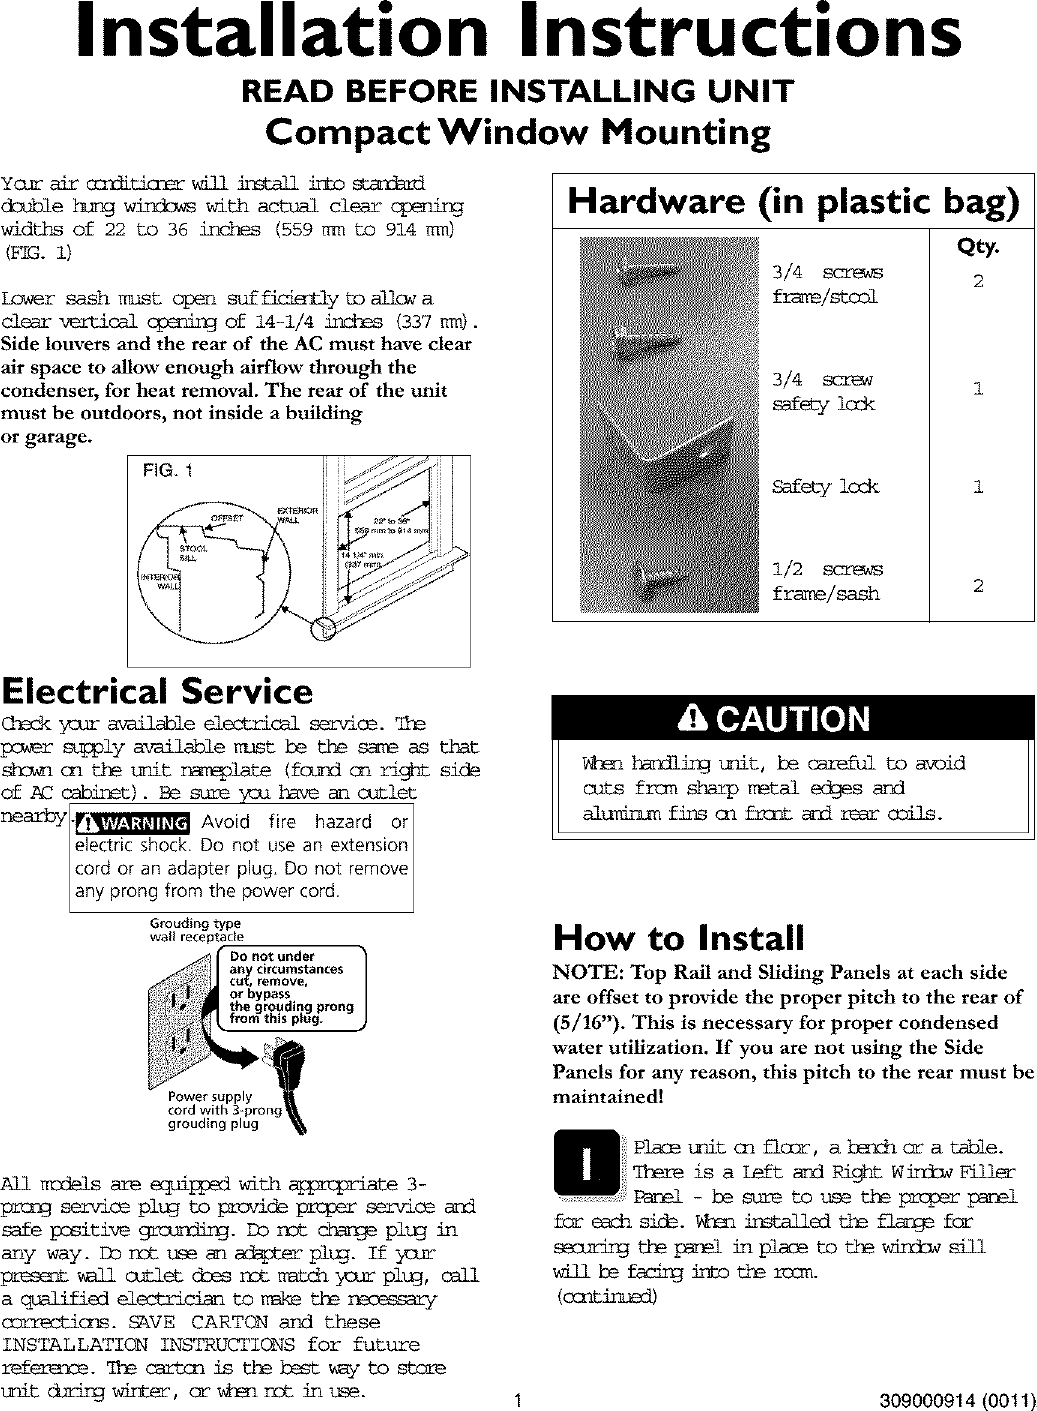 frigidaire faa055m7a1 user manual air conditioner manuals and guides rh usermanual wiki frigidaire air conditioner instruction manual frigidaire portable air conditioner user manual